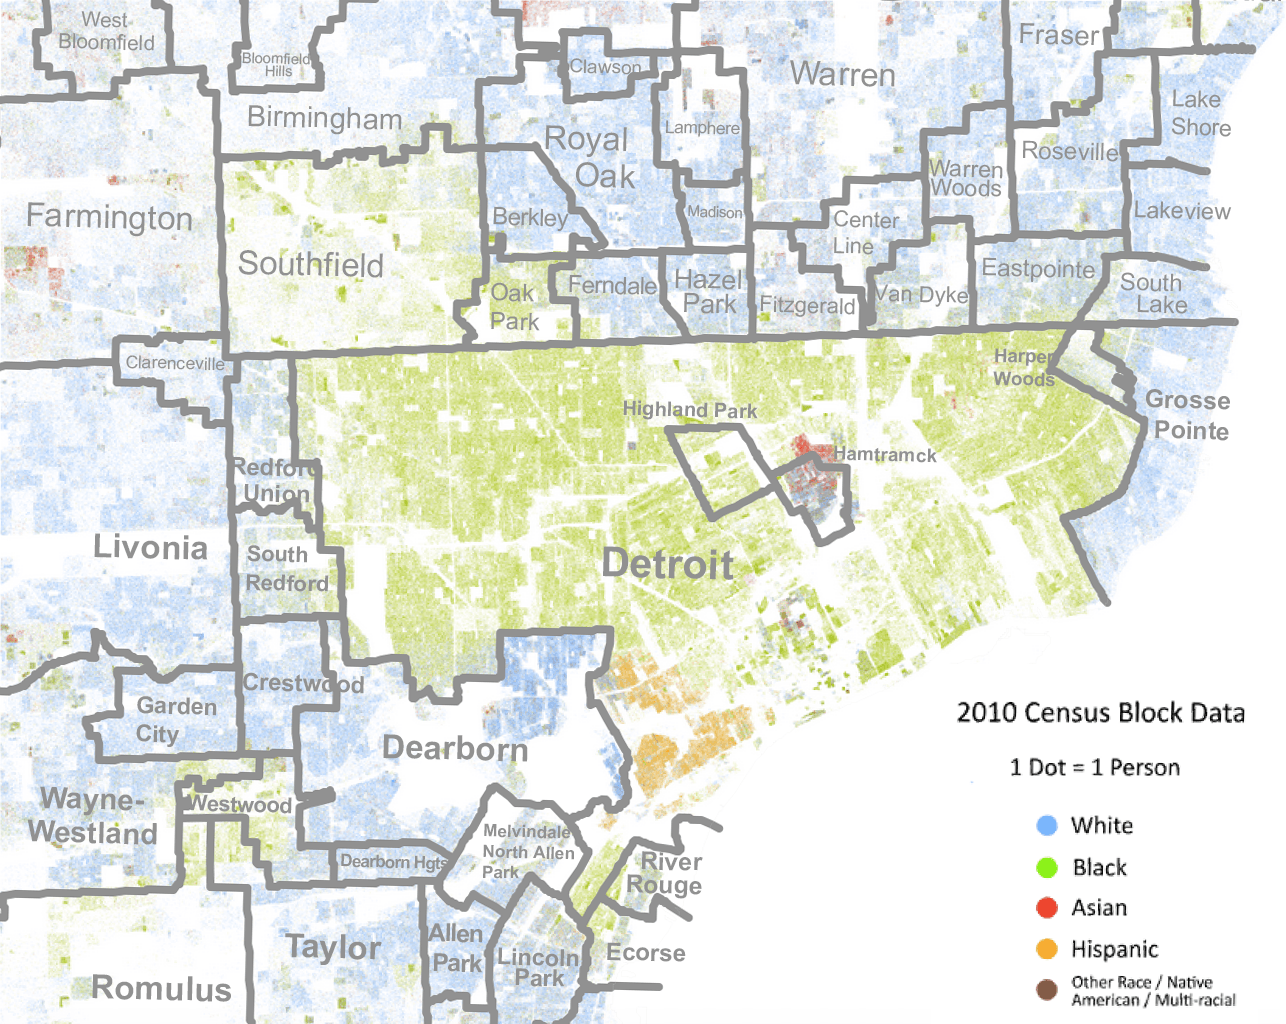 Race dot map of Detroit, with school districts